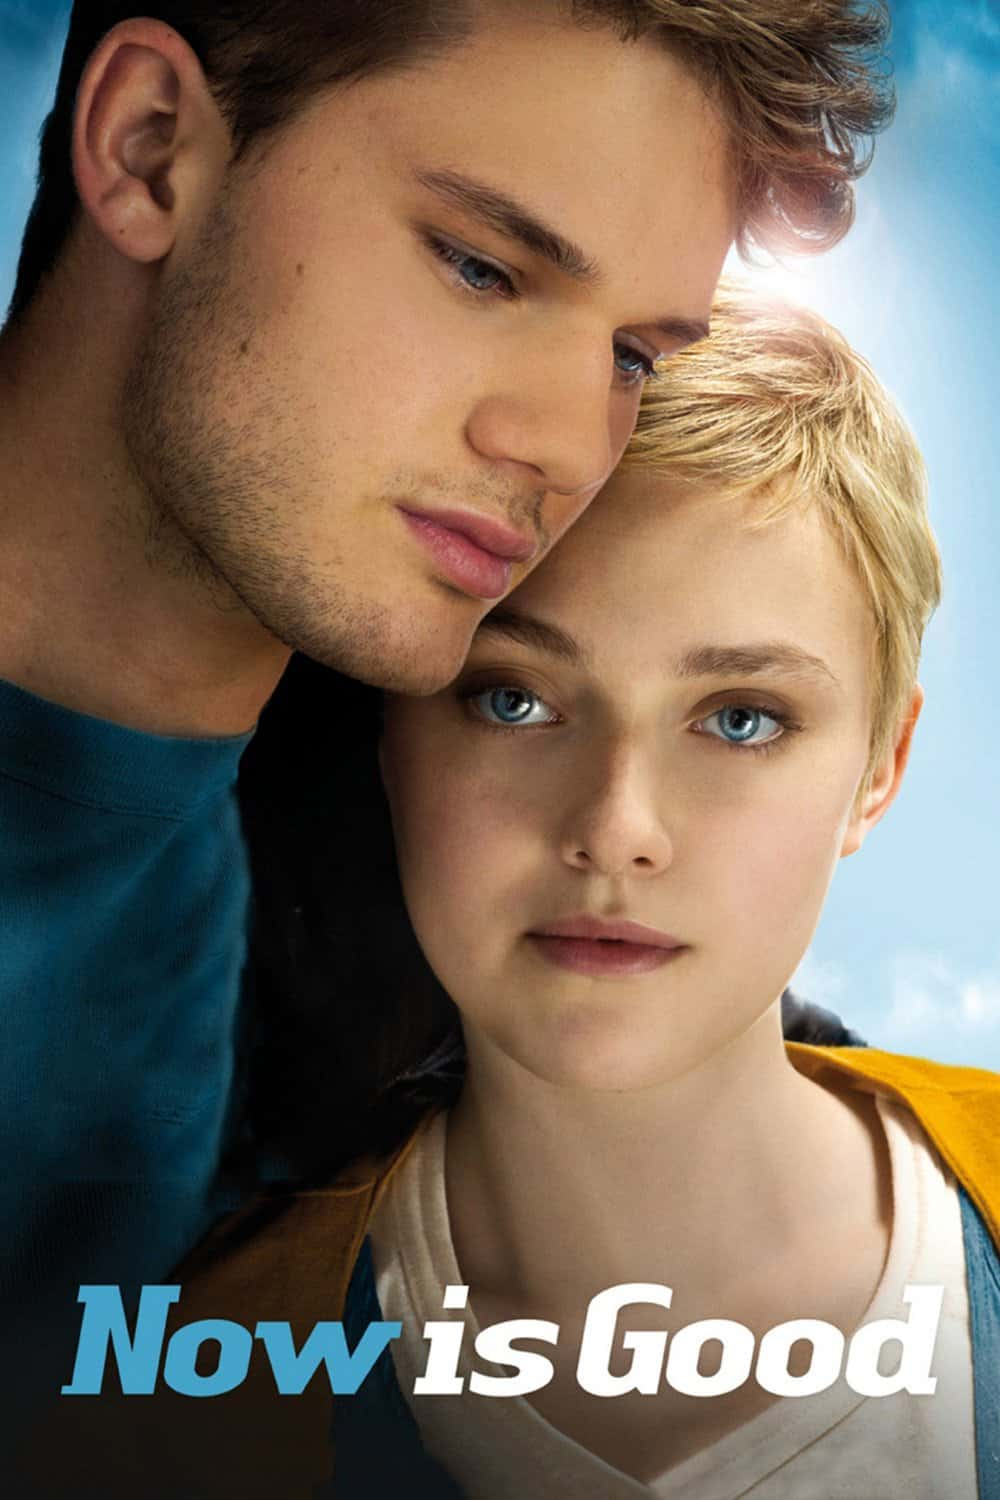 Now Is Good, 2012